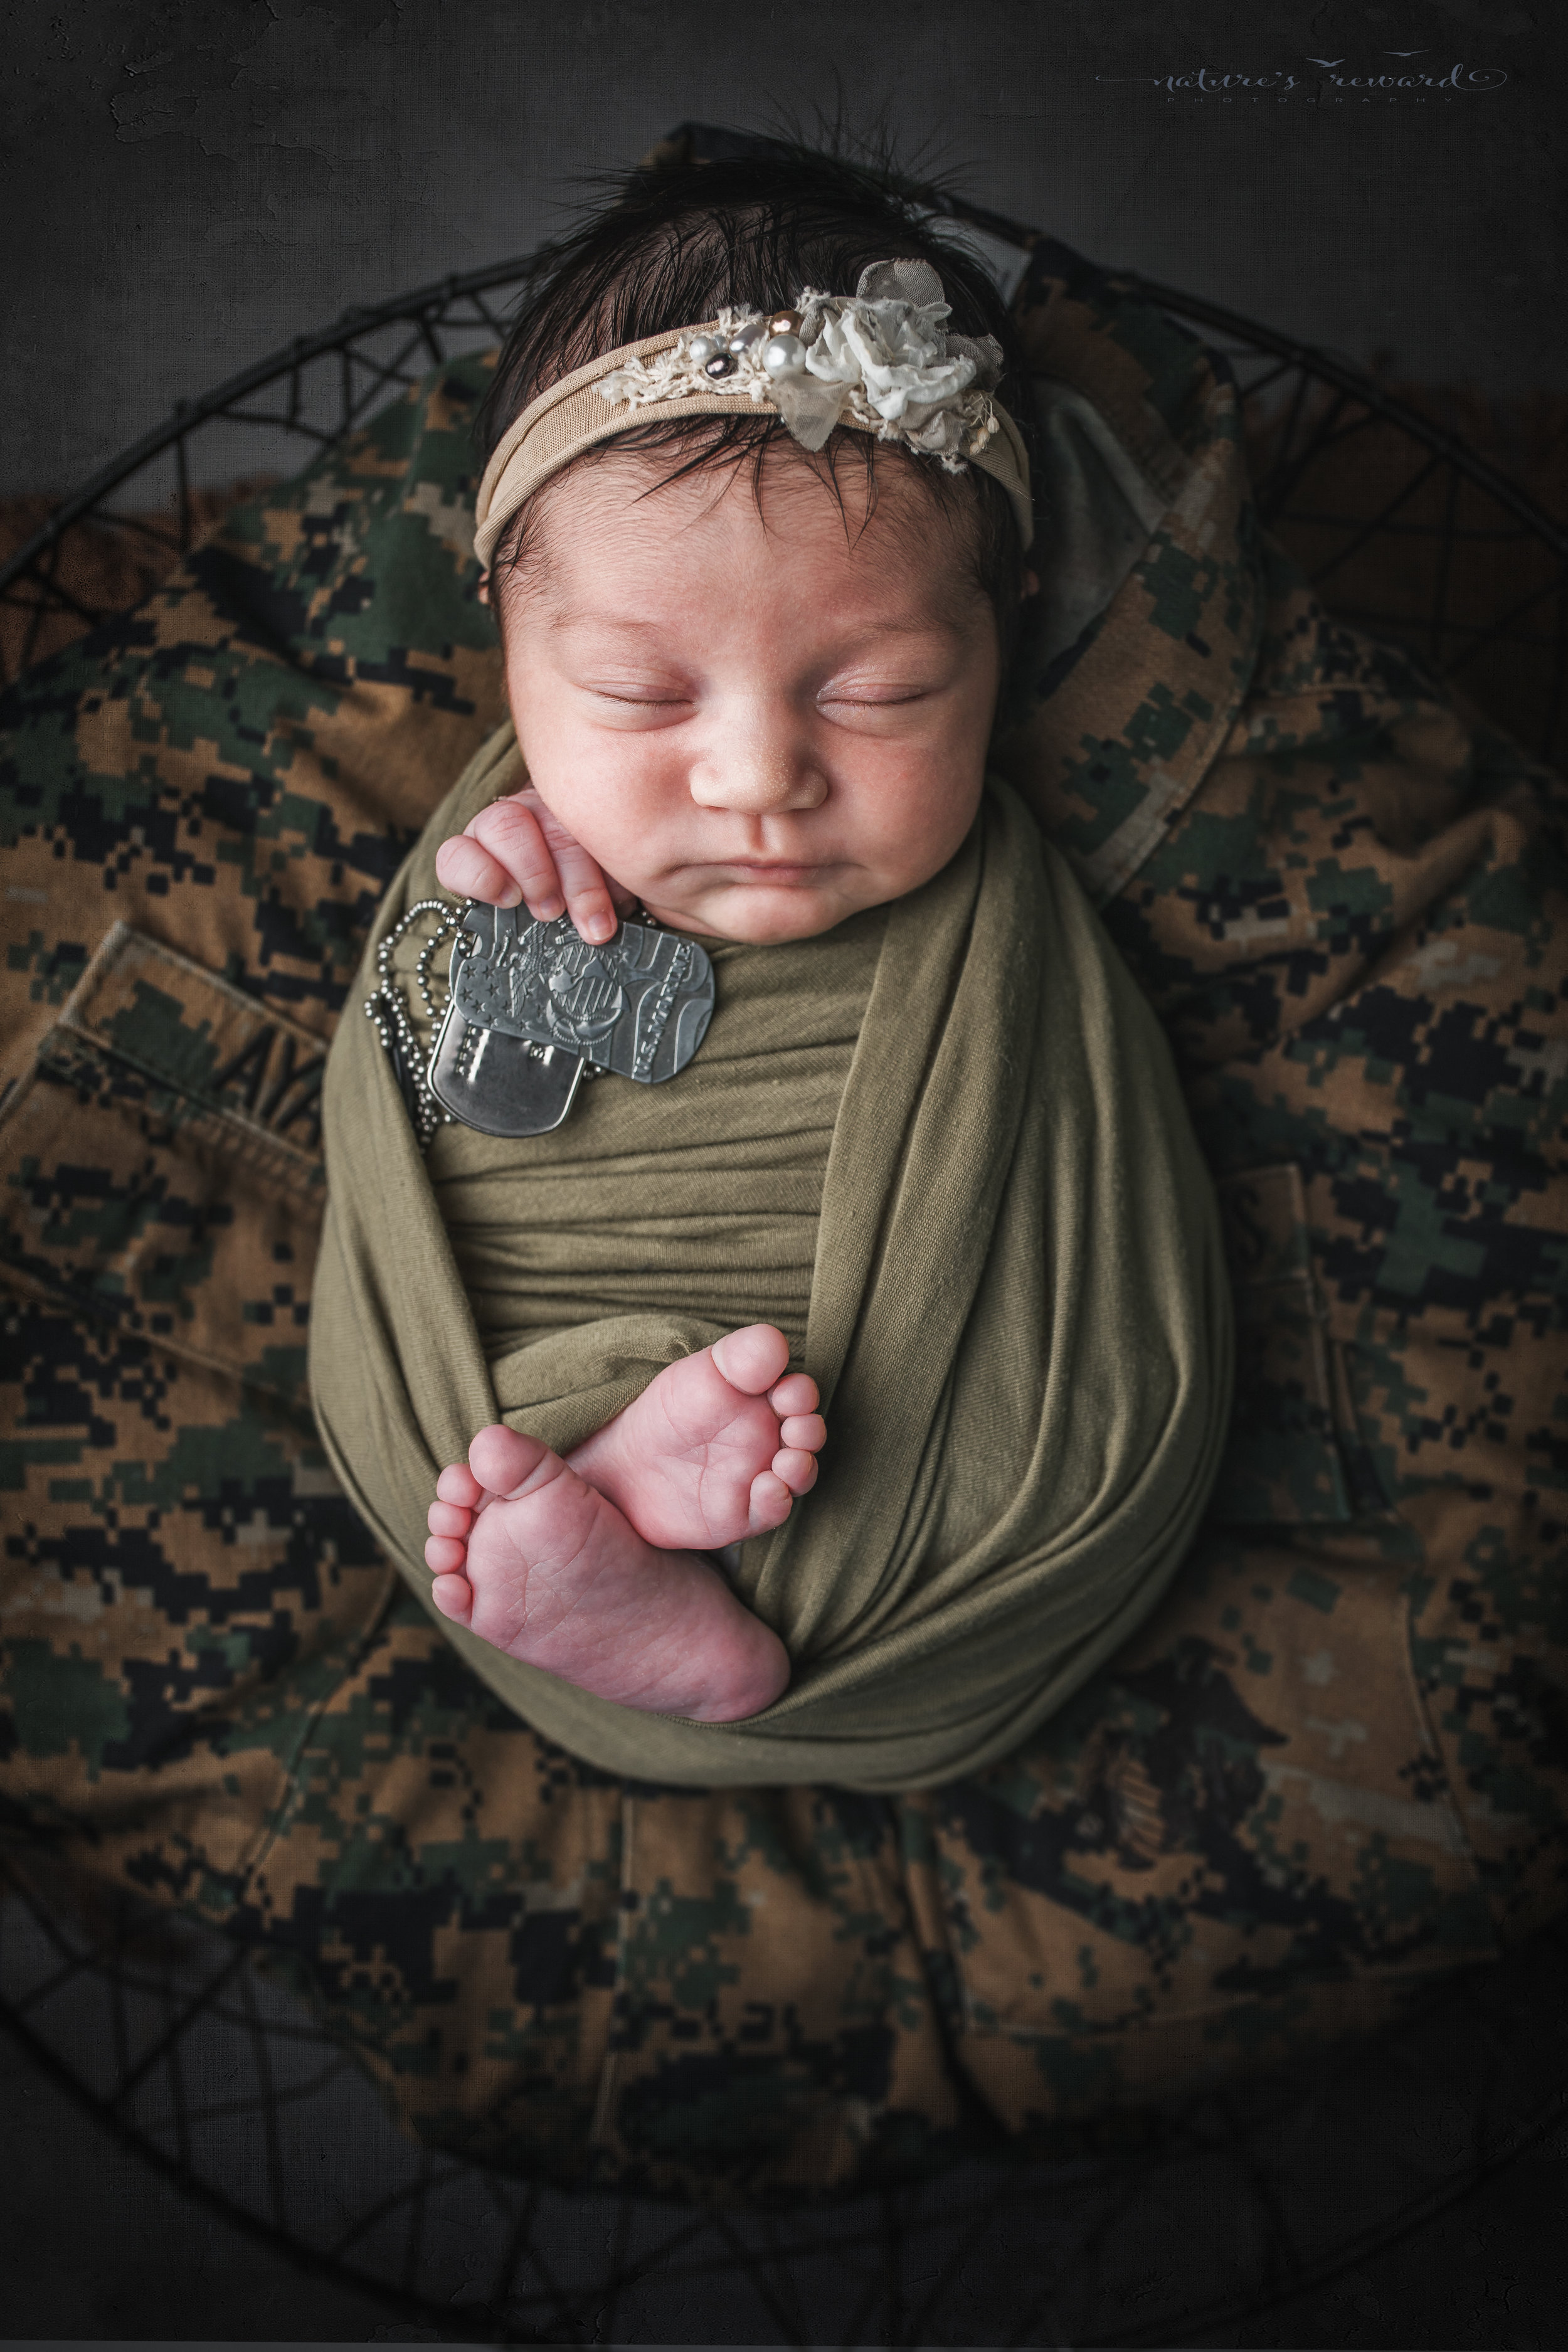 Newborn baby girl swaddled in army green laying on her father's service uniform with his dog tags, a portrait by Nature's Reward Photography